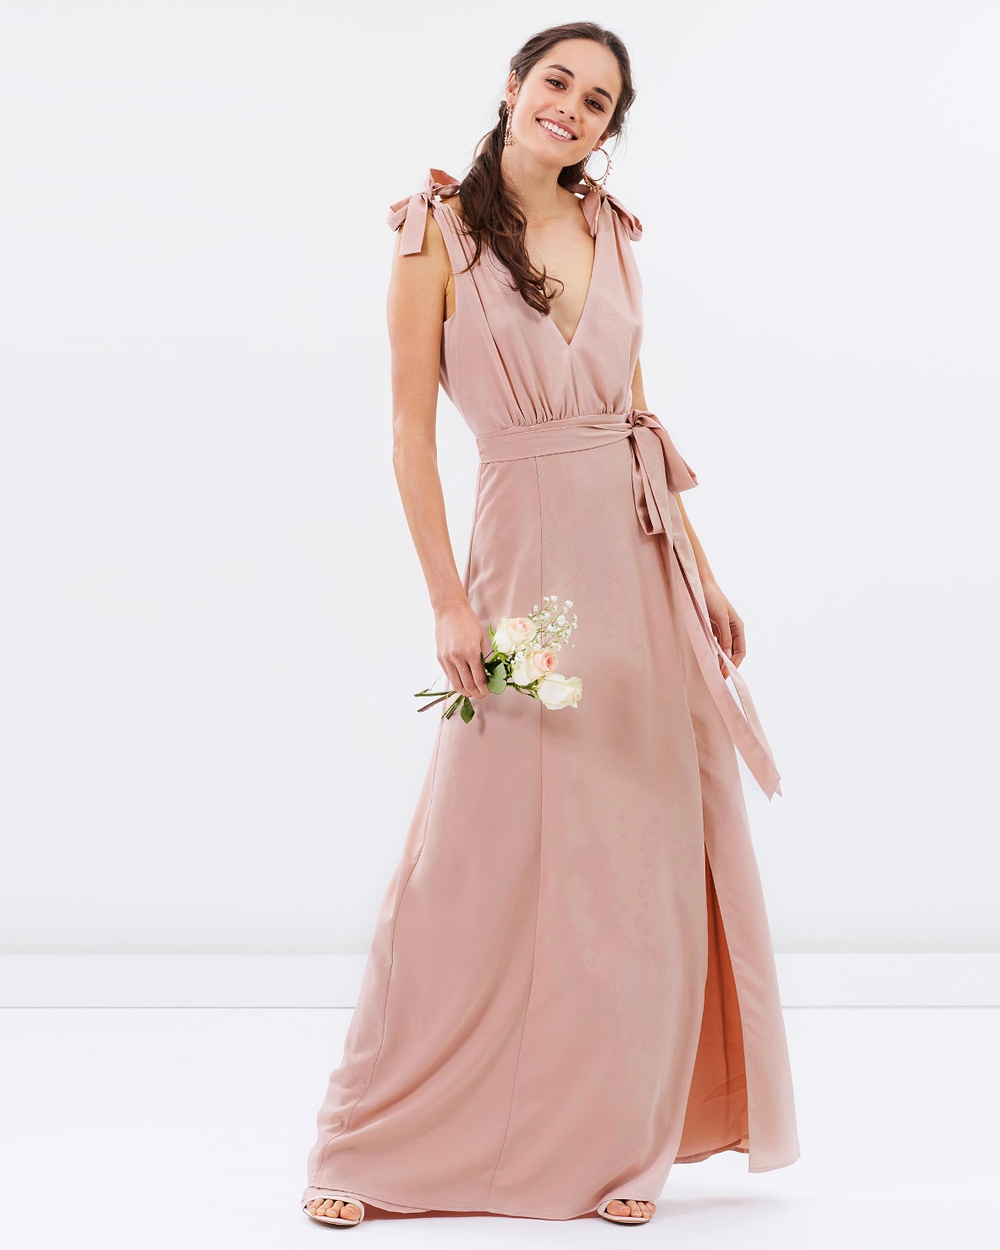 Atmos & Here ICONIC EXCLUSIVE Amelie V Neck Maxi Dress Bridesmaid Dresses Nude Pink ICONIC EXCLUSIVE Amelie V-Neck Maxi Dress